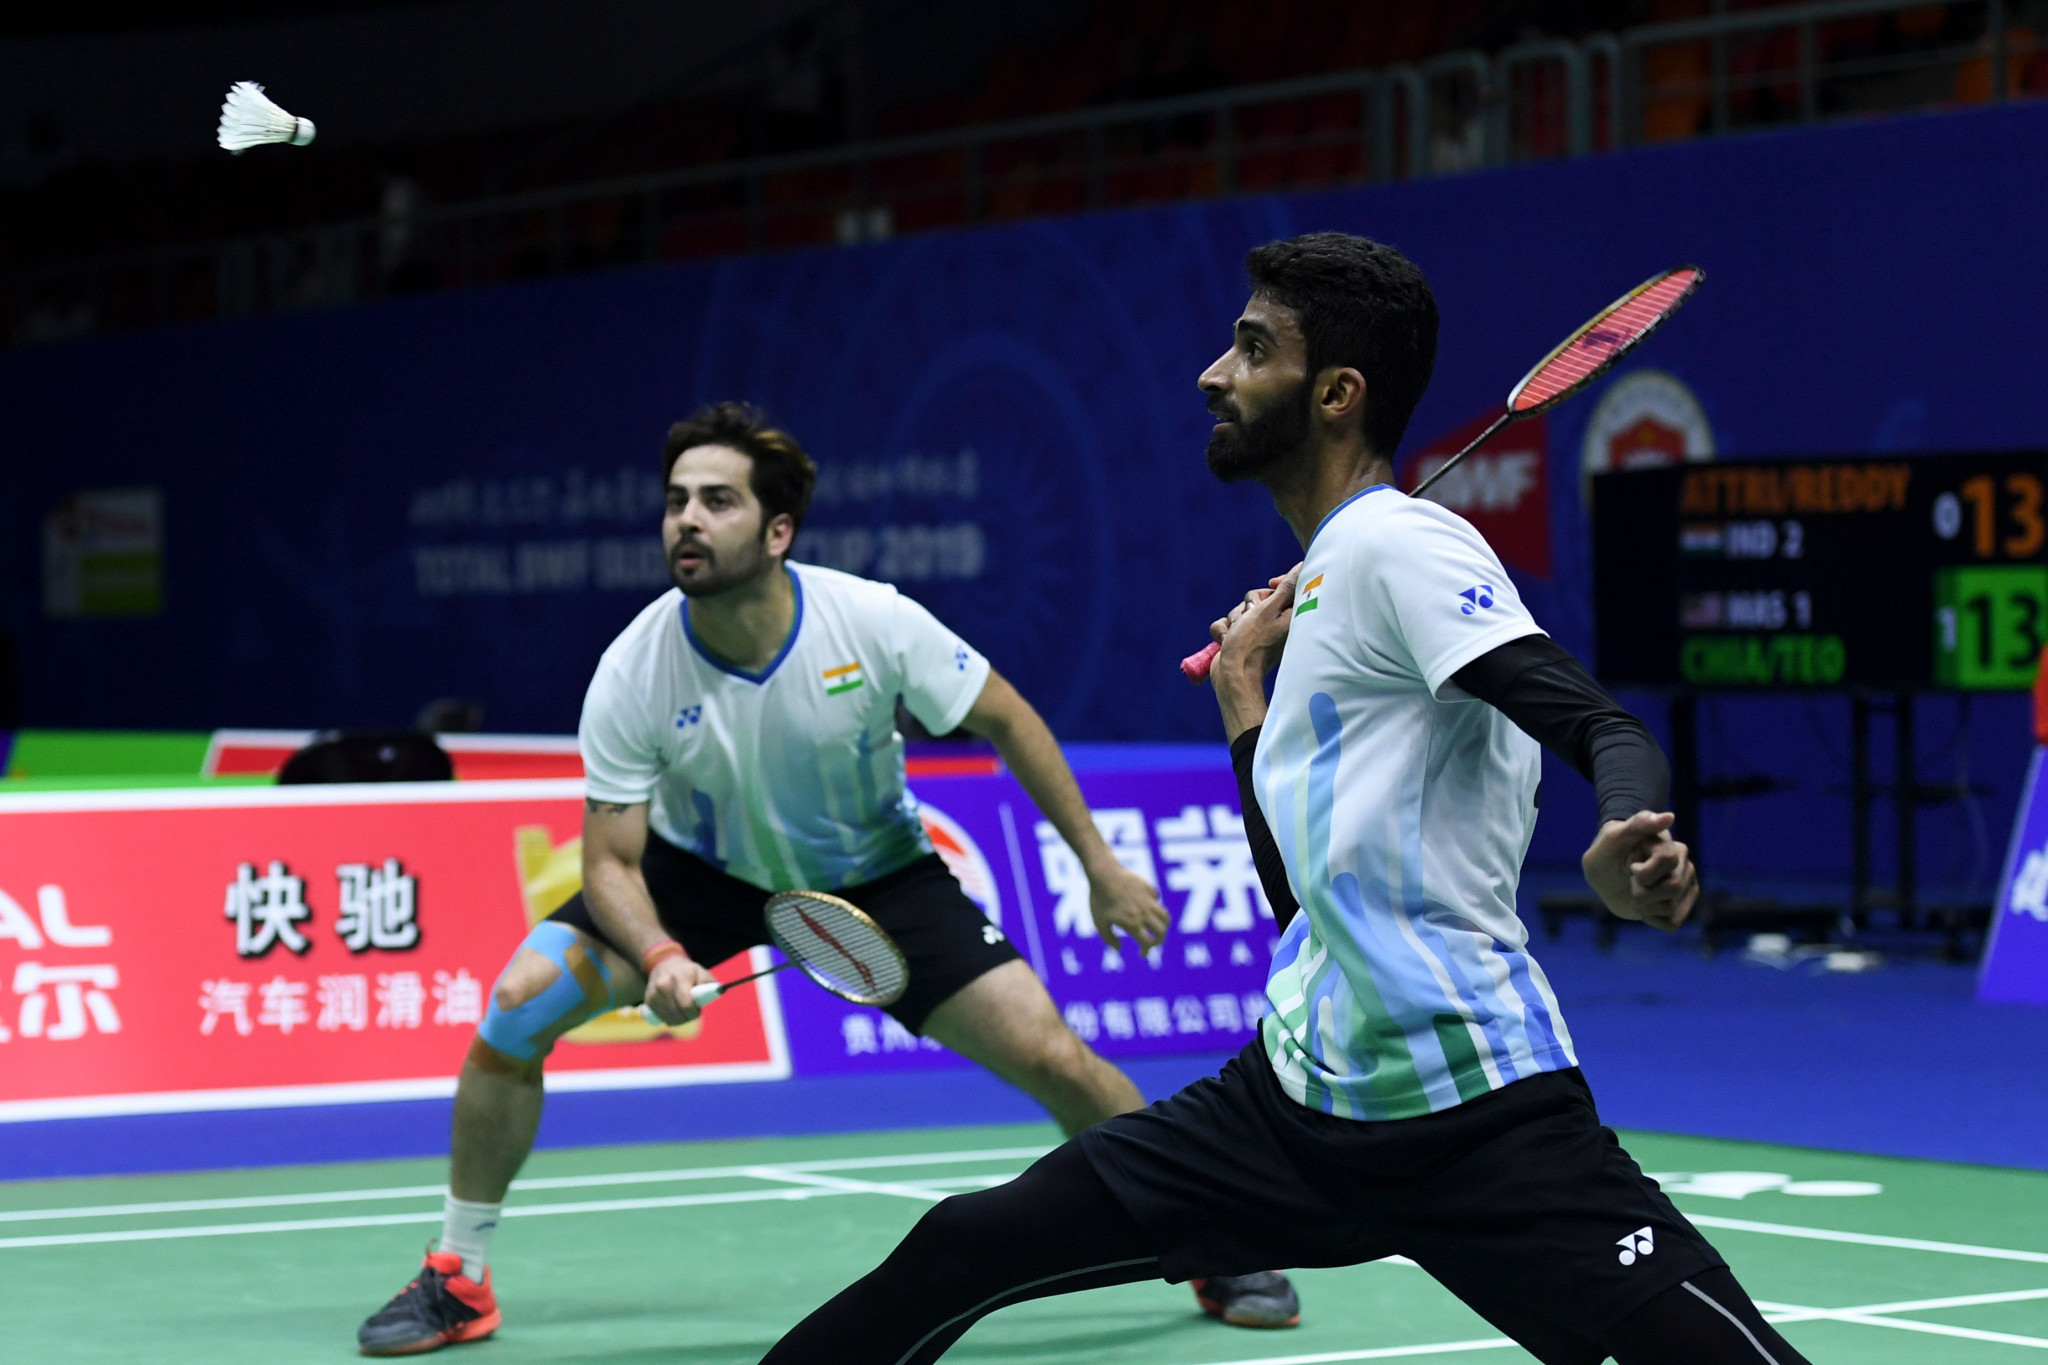 India will need to beat China if they are to reach the quarter-finals of the Sudirman Cup ©Getty Images